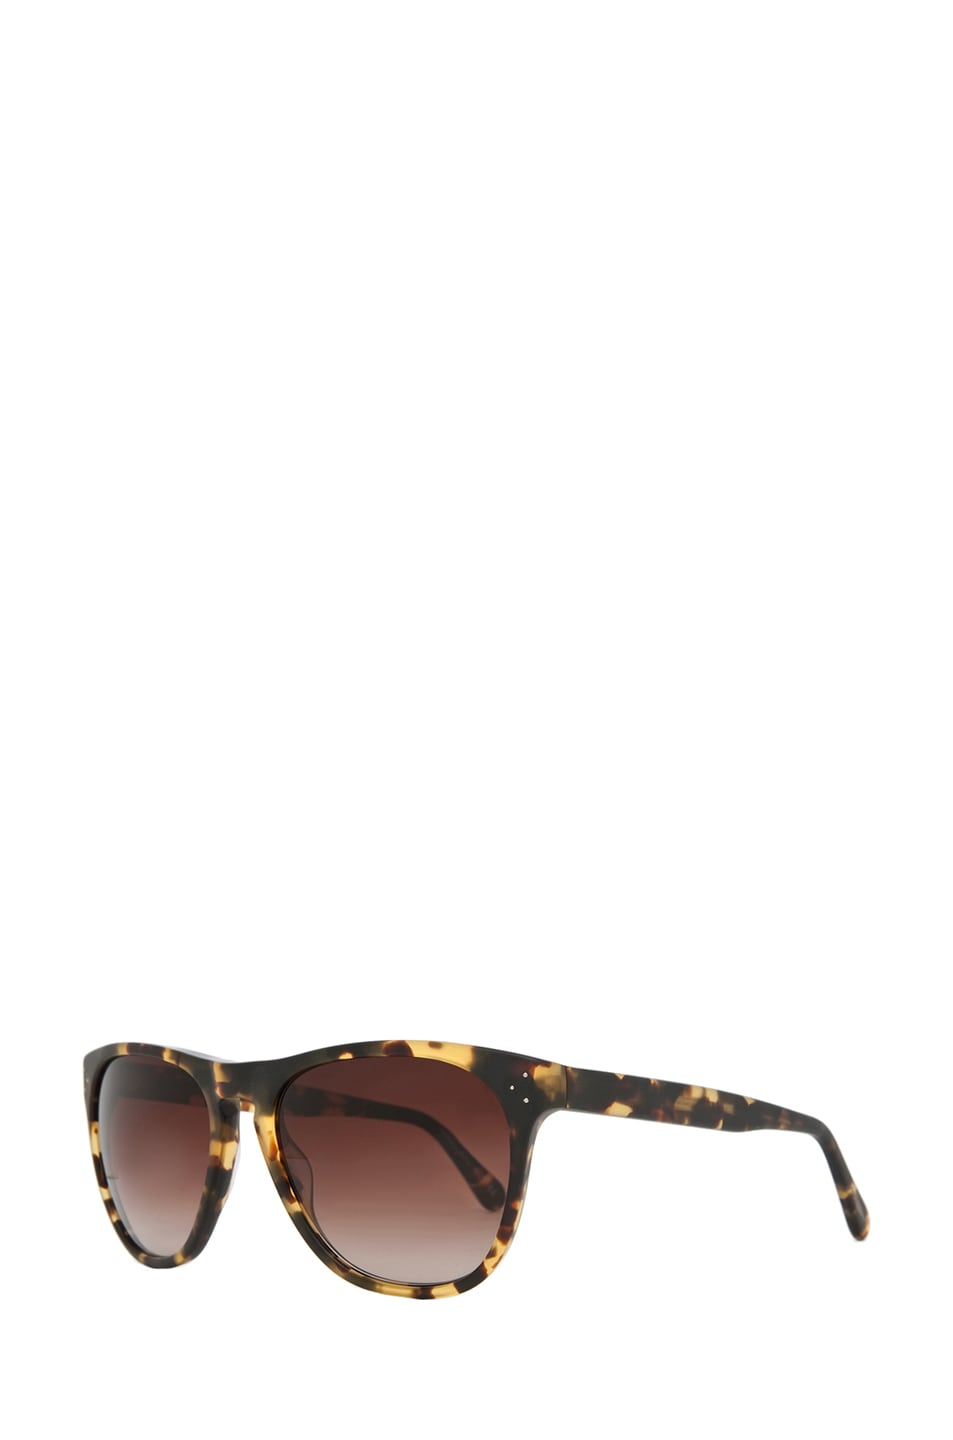 Image 2 of Oliver Peoples Daddy B Sunglasses in Matte Dark Brown Tortoise